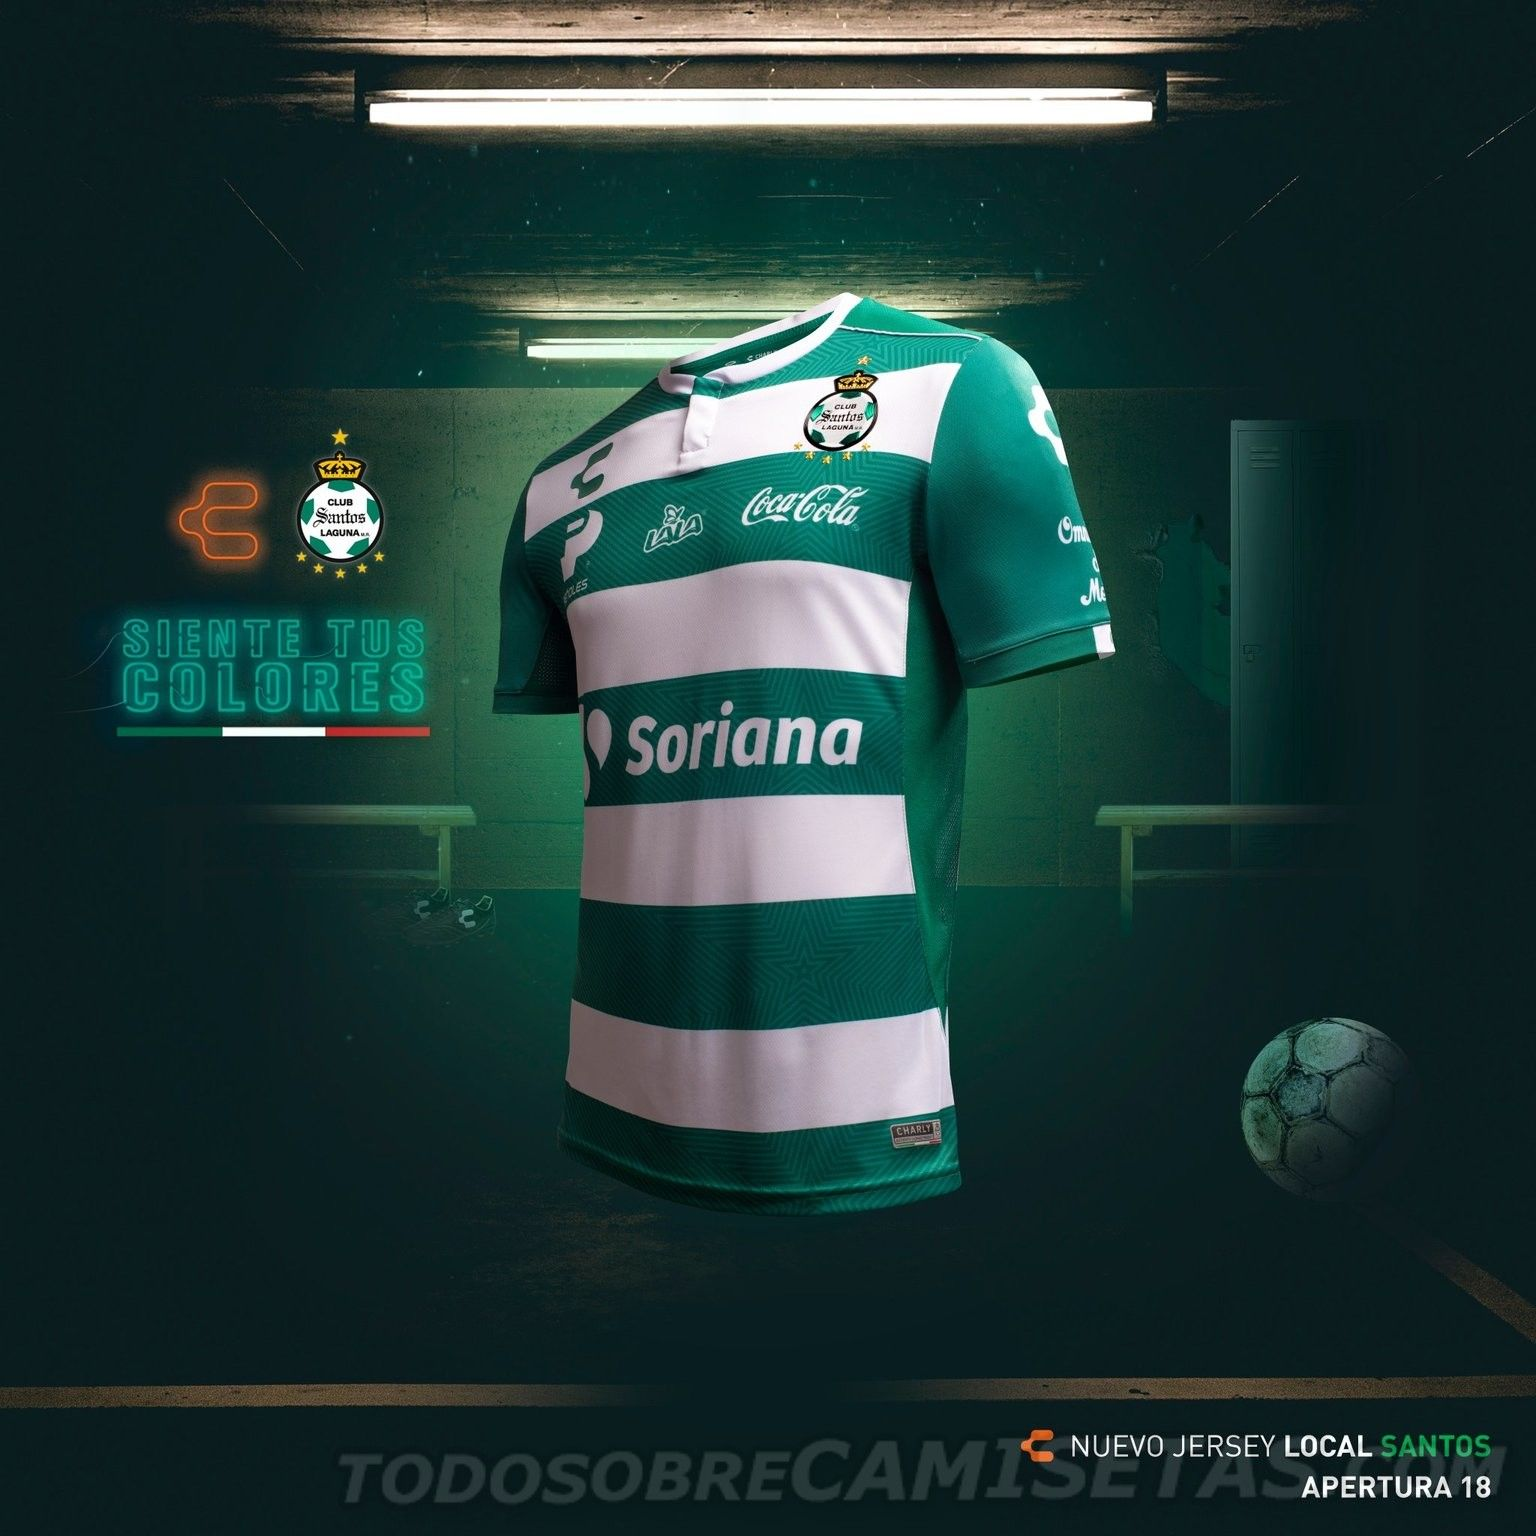 reputable site 731e8 b18be Charly Santos Laguna Jersey CAMPEON Champion 2018//2019 ...